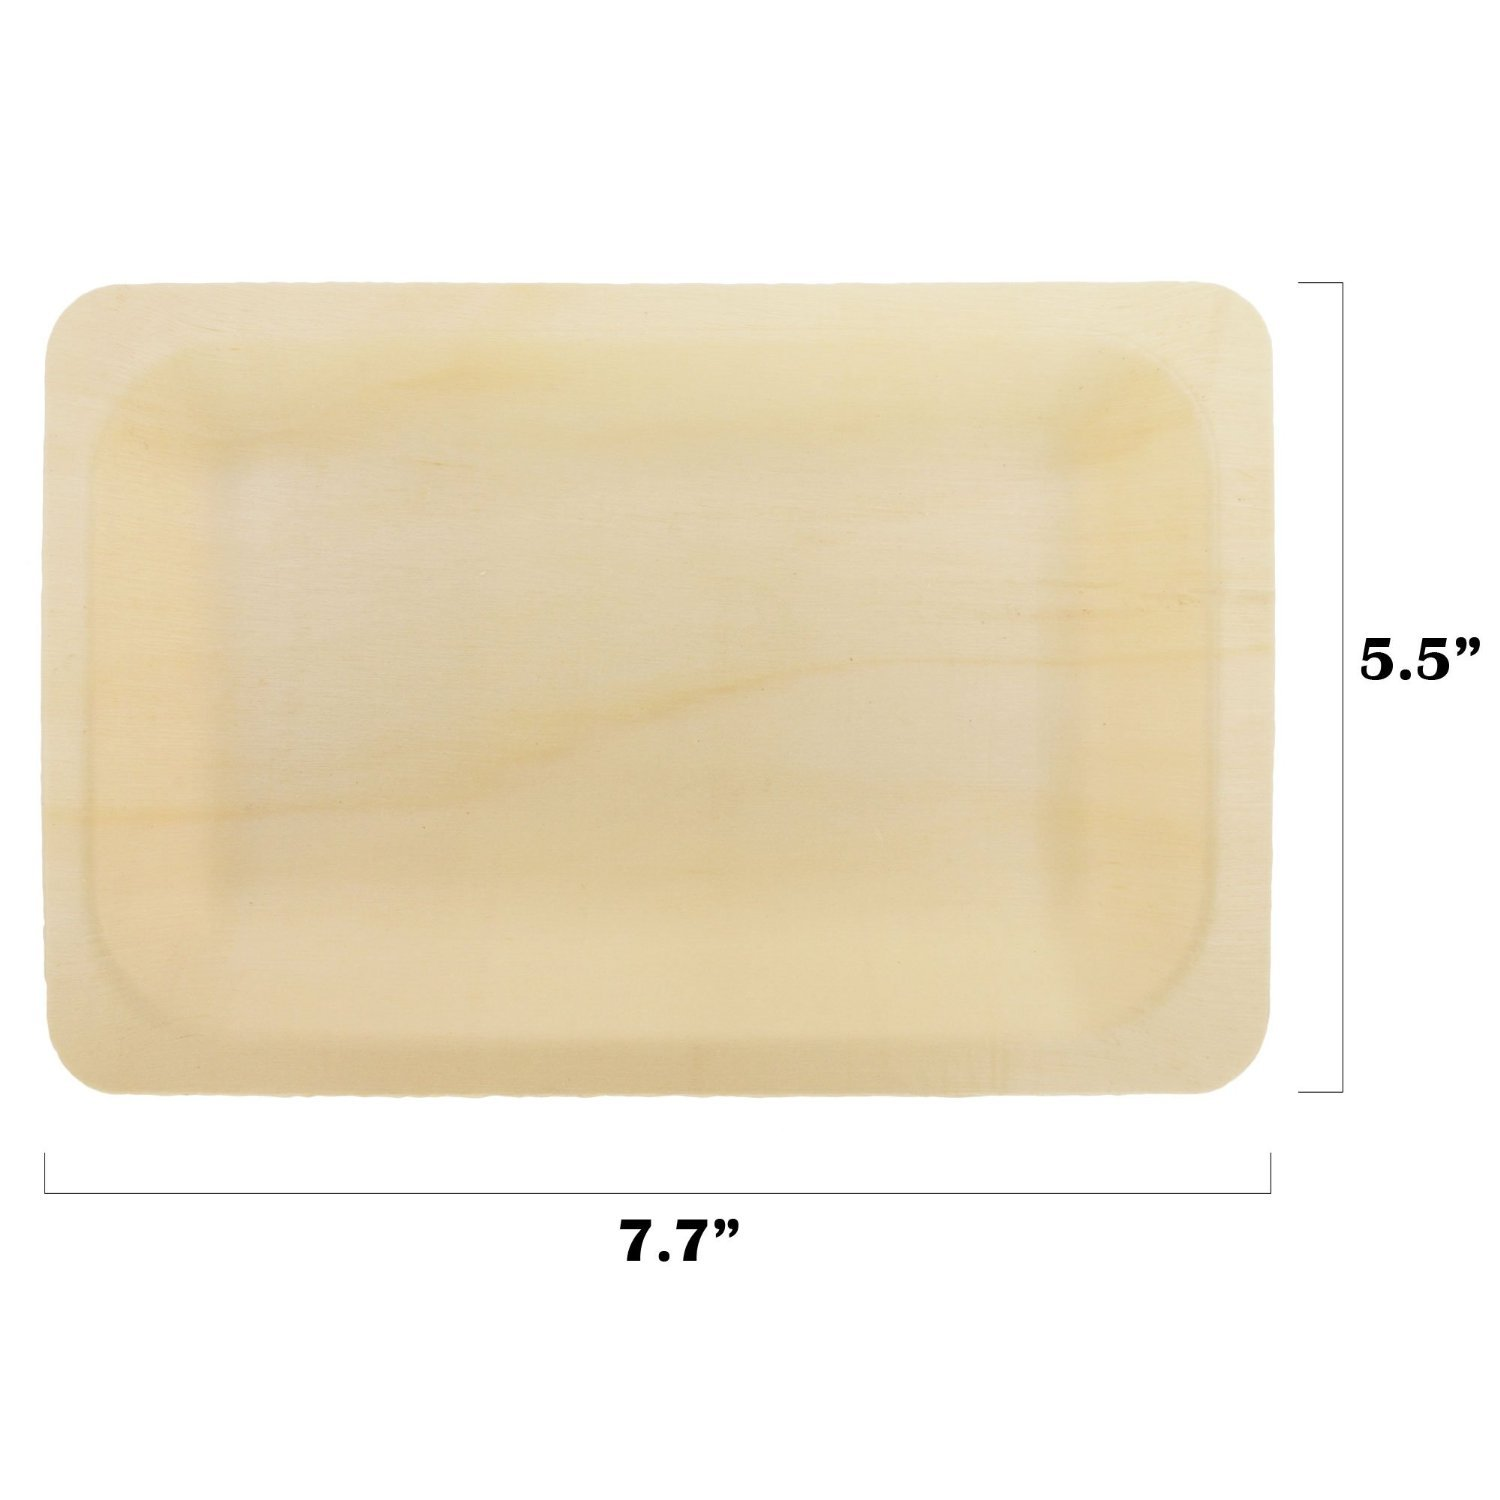 BambooMN Brand - 7.7'' x 5.5'' x 0.7'' Disposable Wood Rectangle Plates / Dishes - 300 Pieces